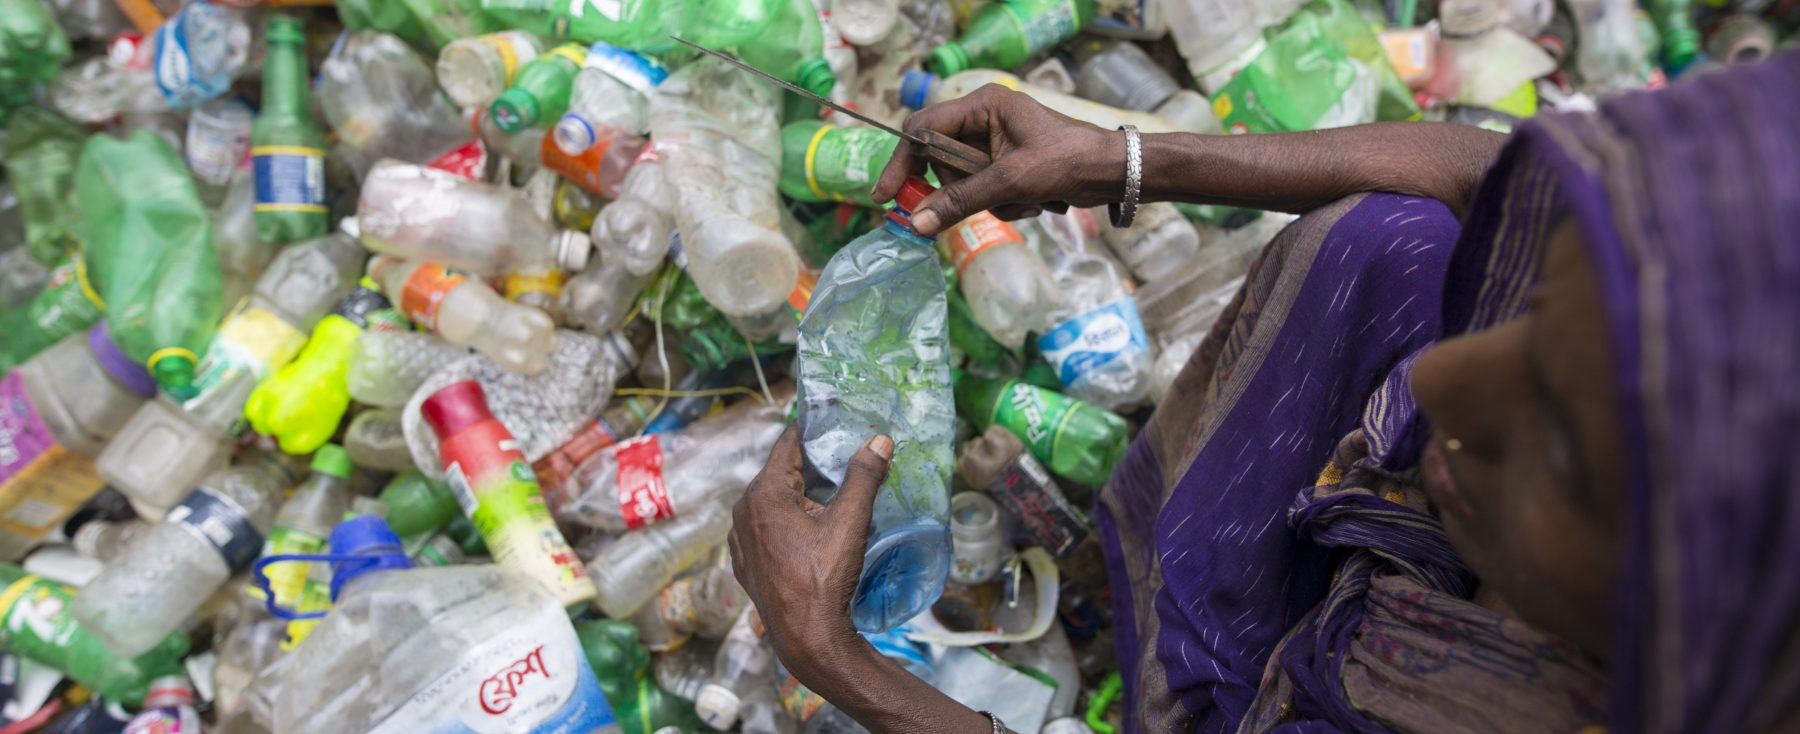 Female laborers sort through polyethylene terephthalate (PET) bottles in a recycling factory on July 06, 2017 in Dhaka, Bangladesh. (Zakir Chowdhury/Barcroft Images / Barcroft Media via Getty Images)